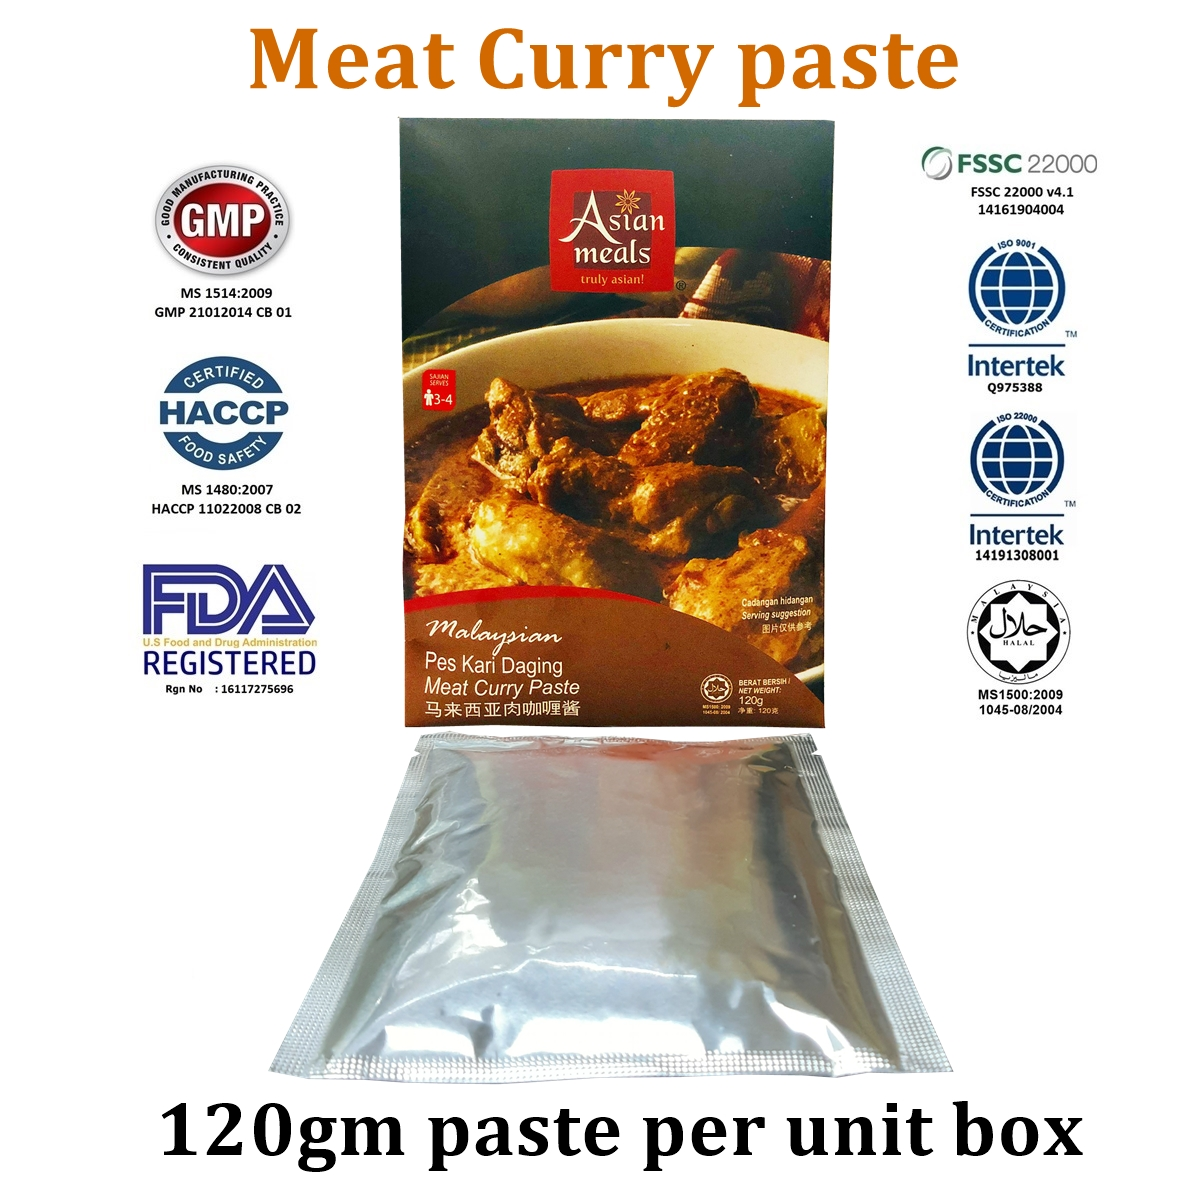 AsianMeals® Meat Curry paste 120gm